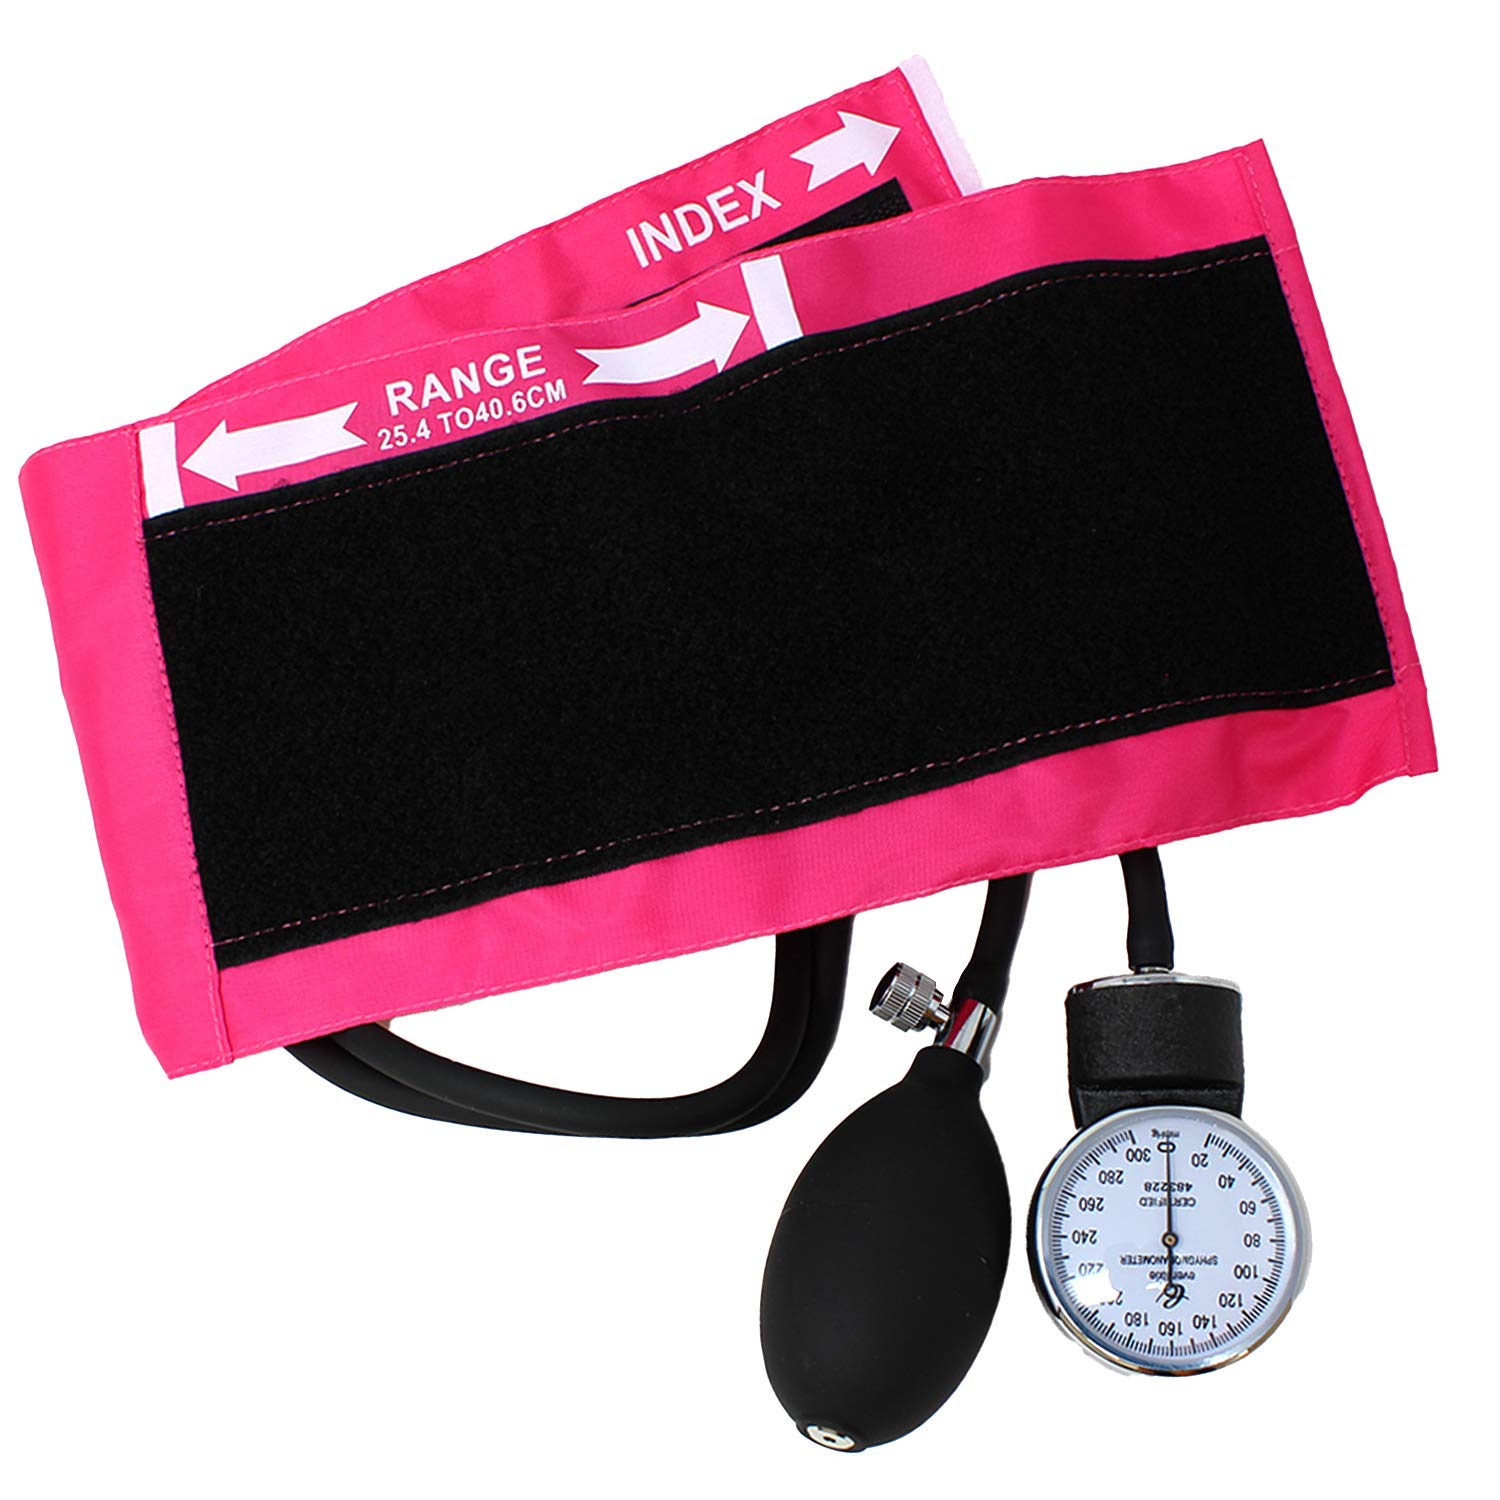 Dixie EMS Deluxe Aneroid Sphygmomanometer Blood Pressure Set W/ Adult Cuff, Carrying Case and Calibration Tool - Pink